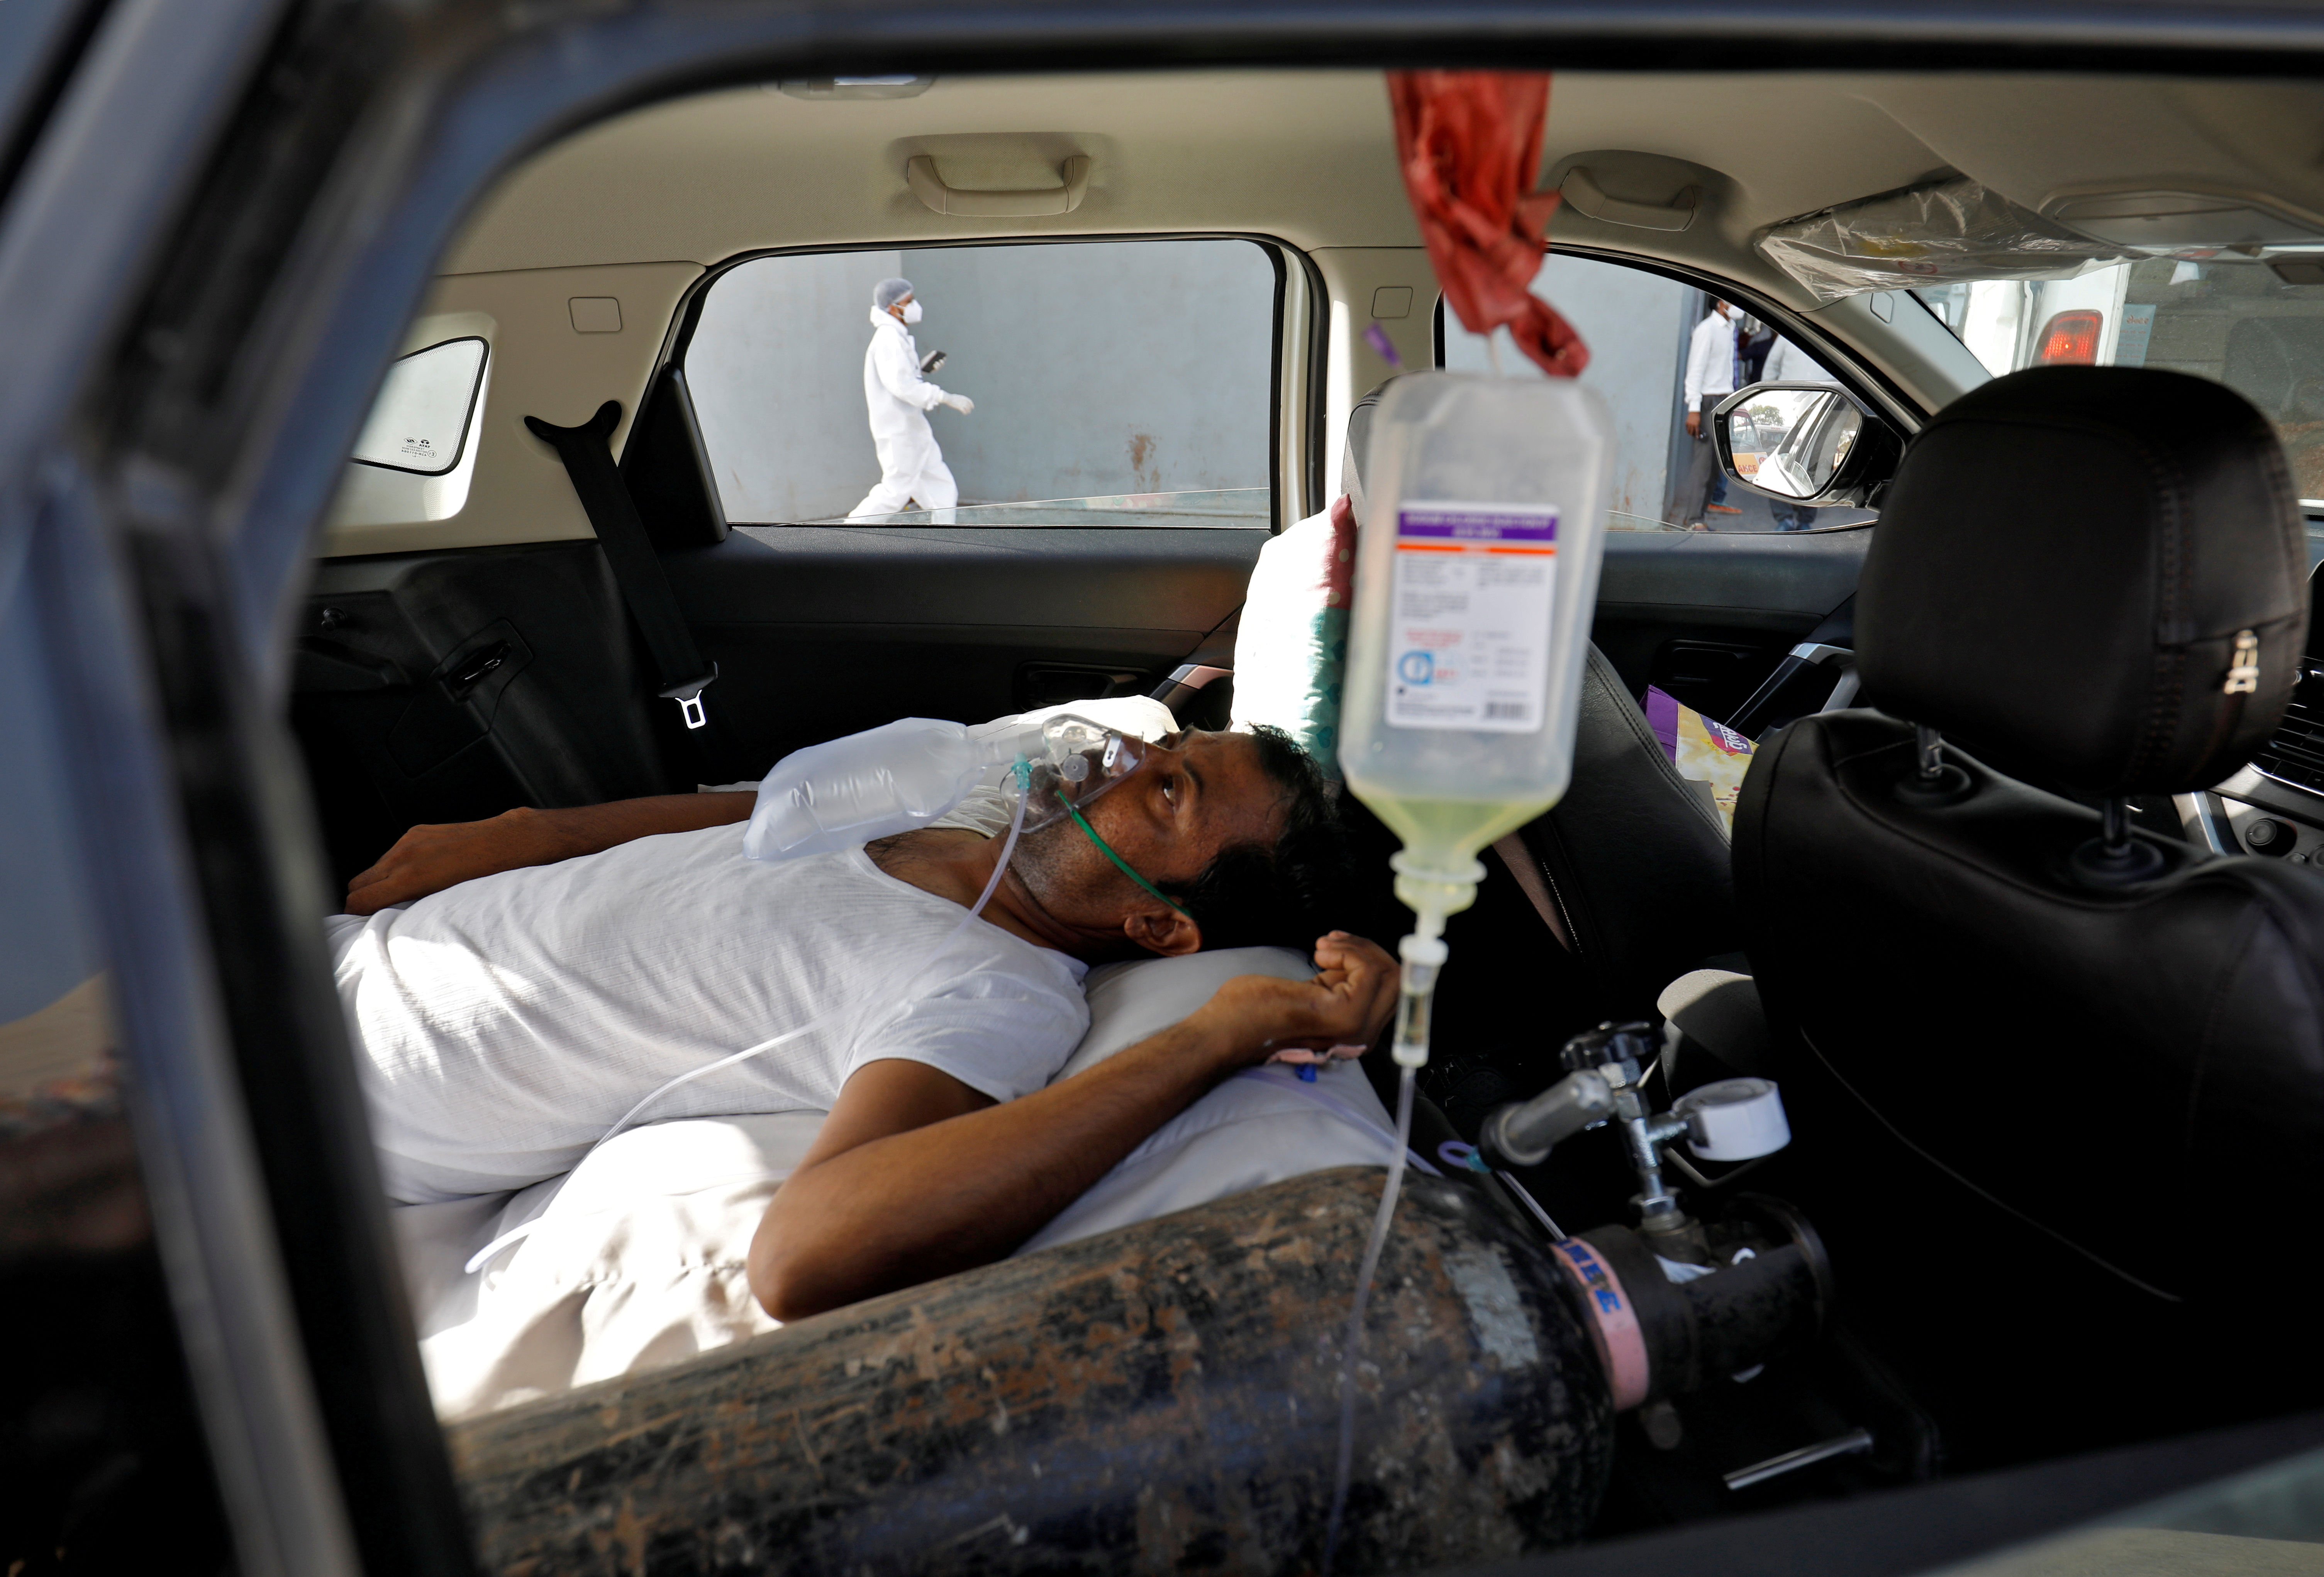 A patient with breathing problems lies inside a car while waiting to enter a COVID-19 hospital for treatment, amidst the spread of the coronavirus disease (COVID-19), in Ahmedabad, India, April 22, 2021. REUTERS/Amit Dave